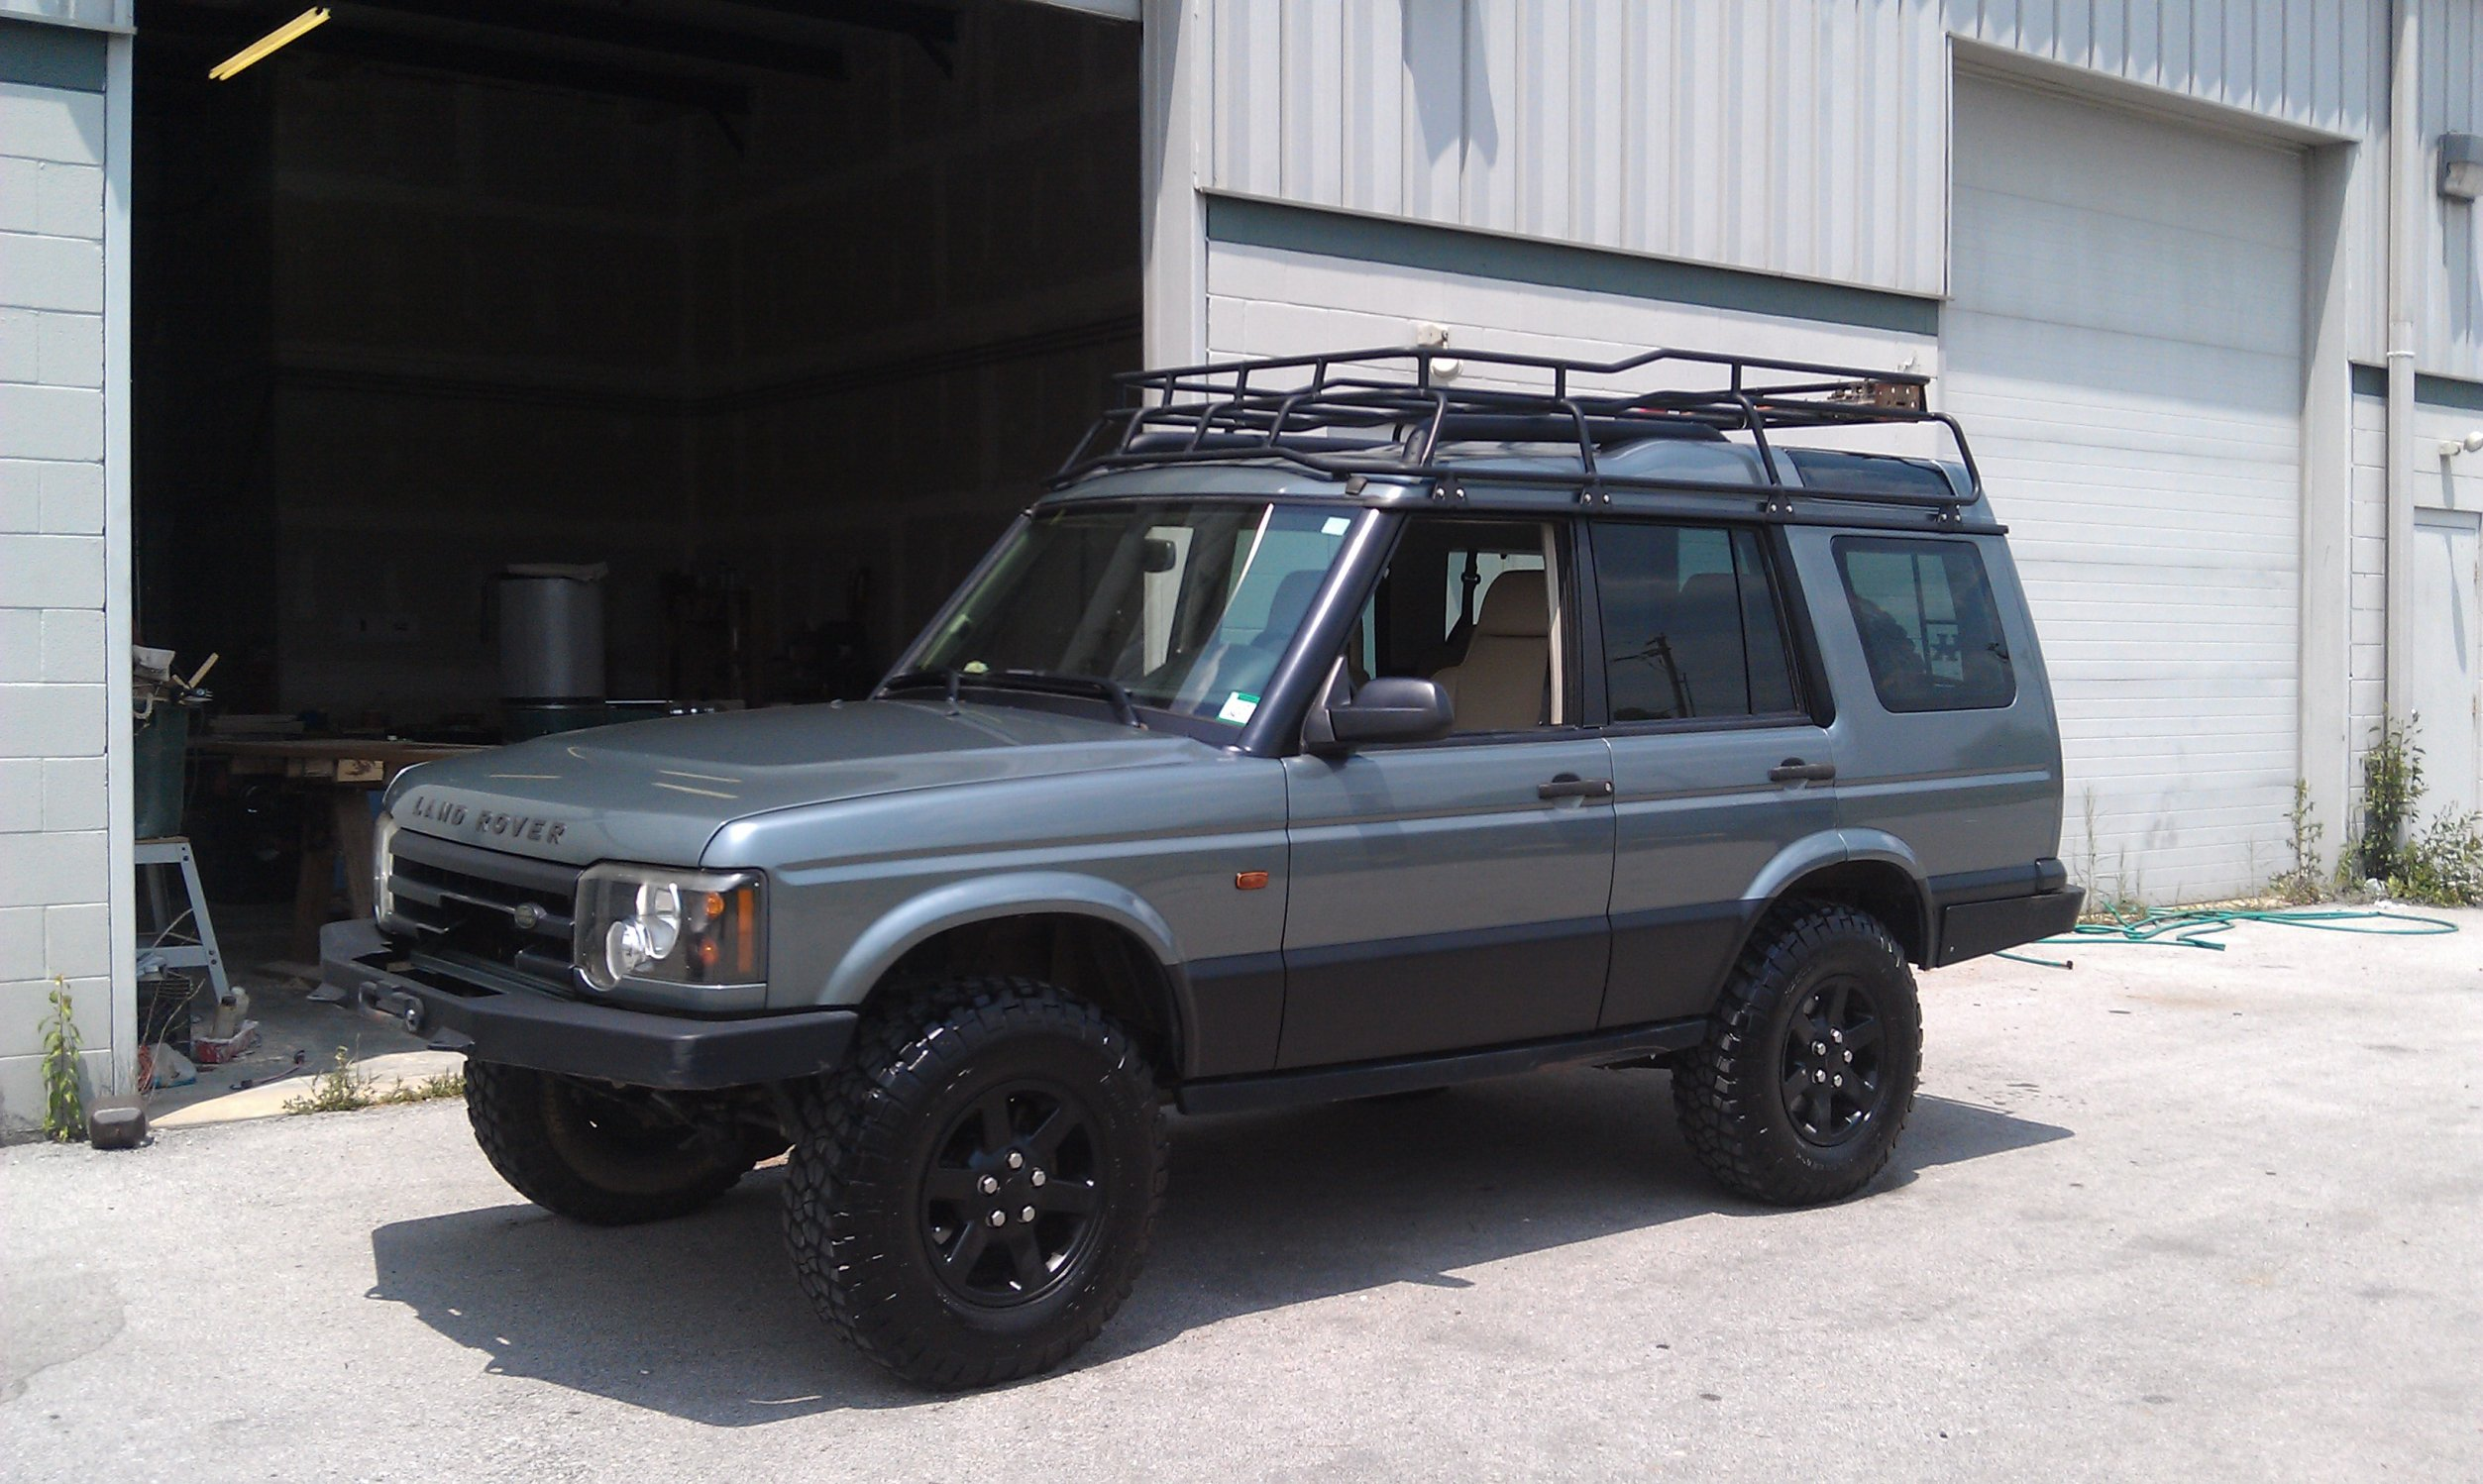 land t rover ain ii symbol arb discovery bumper landrover preview status no recoil bar series front transport sahara